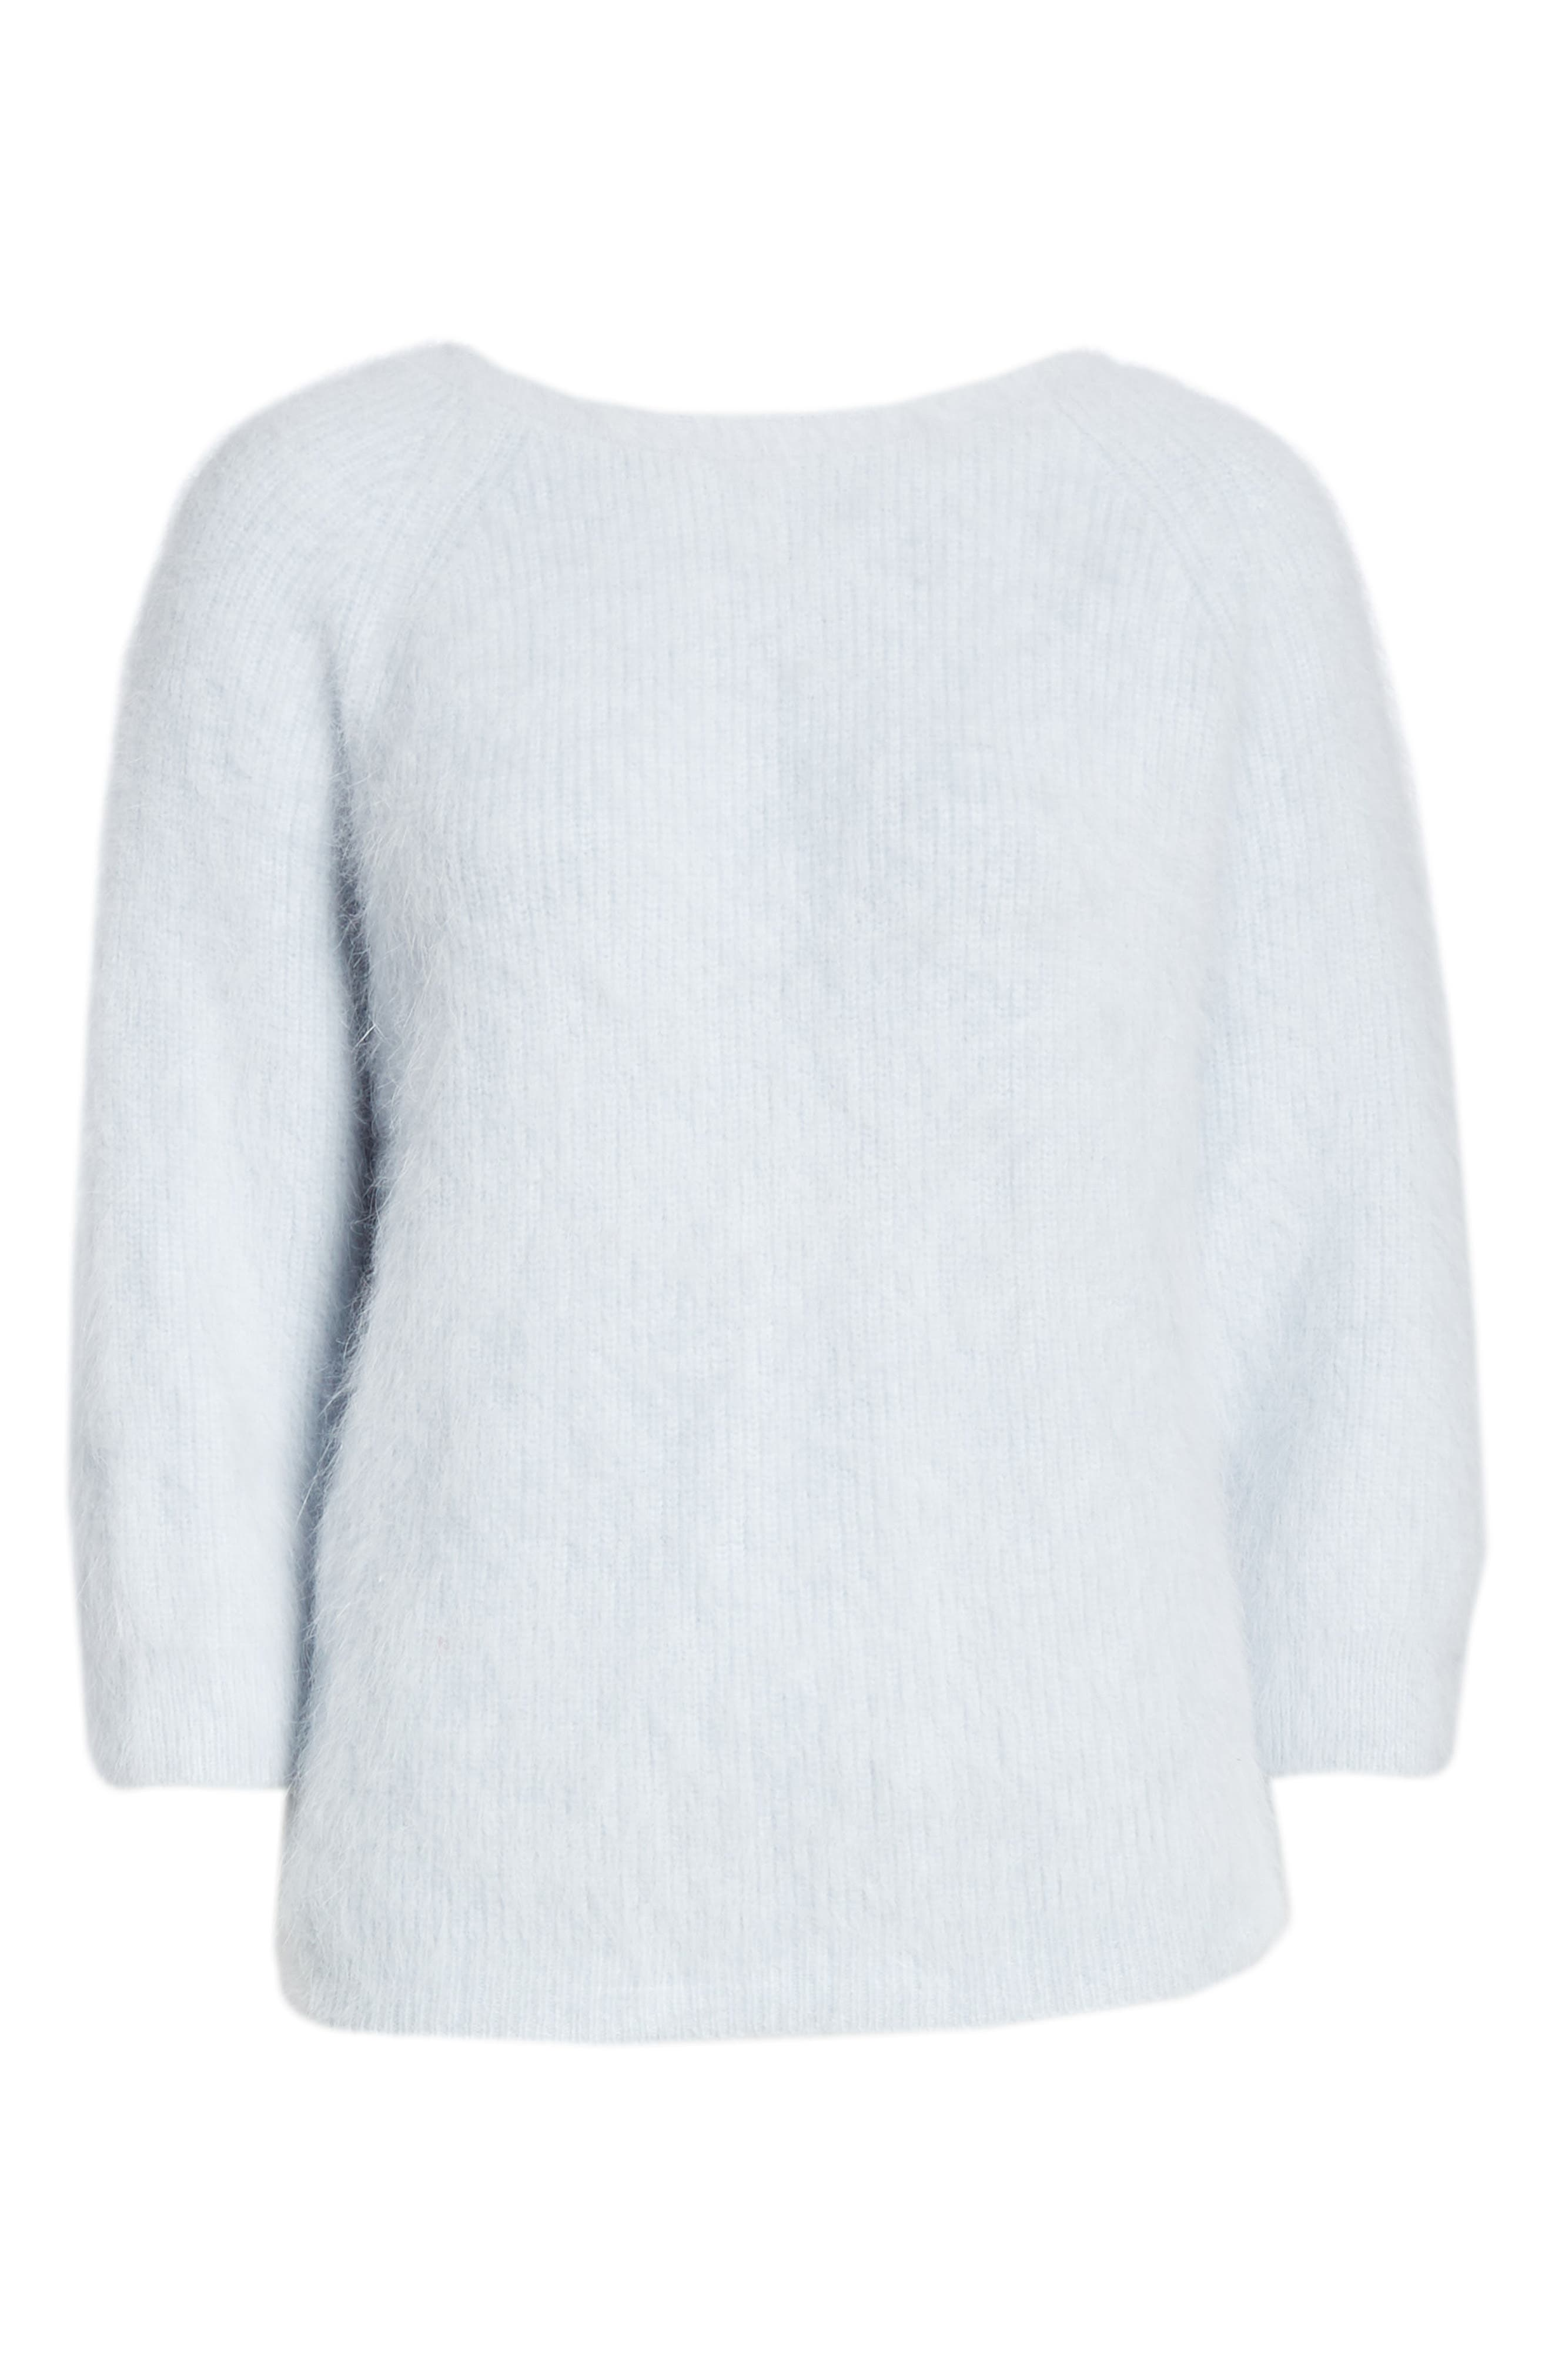 Barmy Twist Back Angora Blend Sweater,                             Alternate thumbnail 6, color,                             400